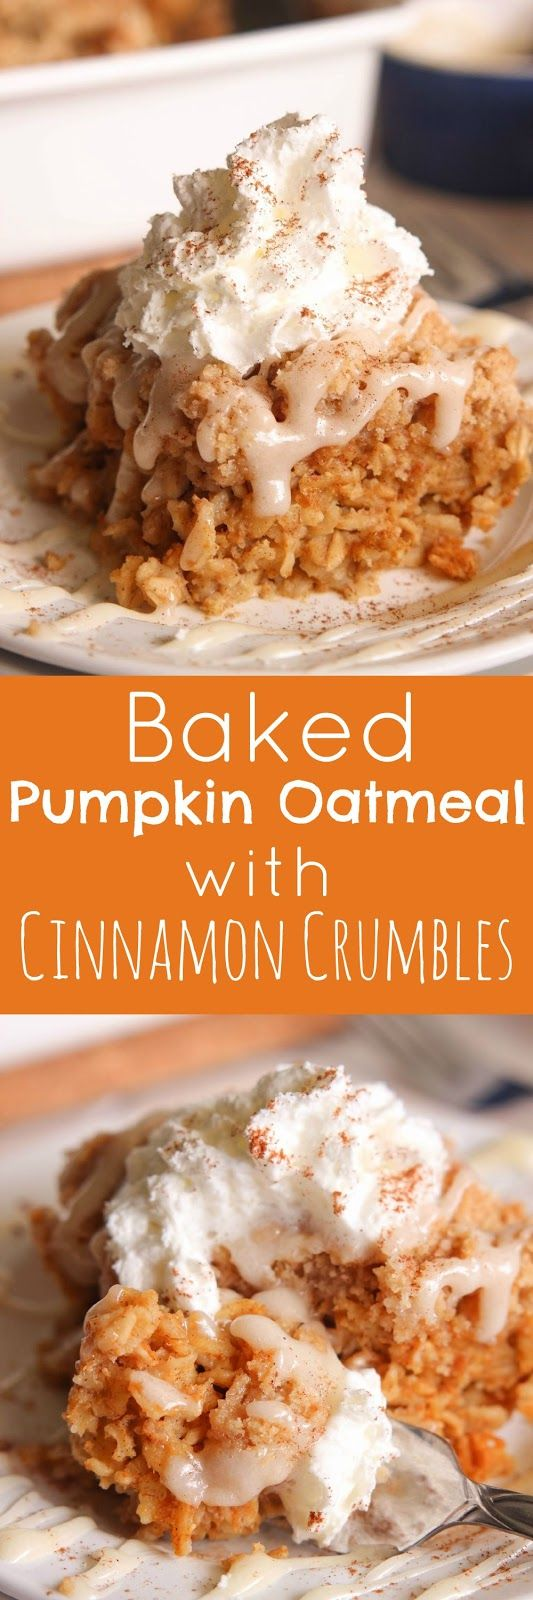 Baked Pumpkin Oatmeal with Cinnamon Crumbles topped with cream cheese icing and whipped cream.